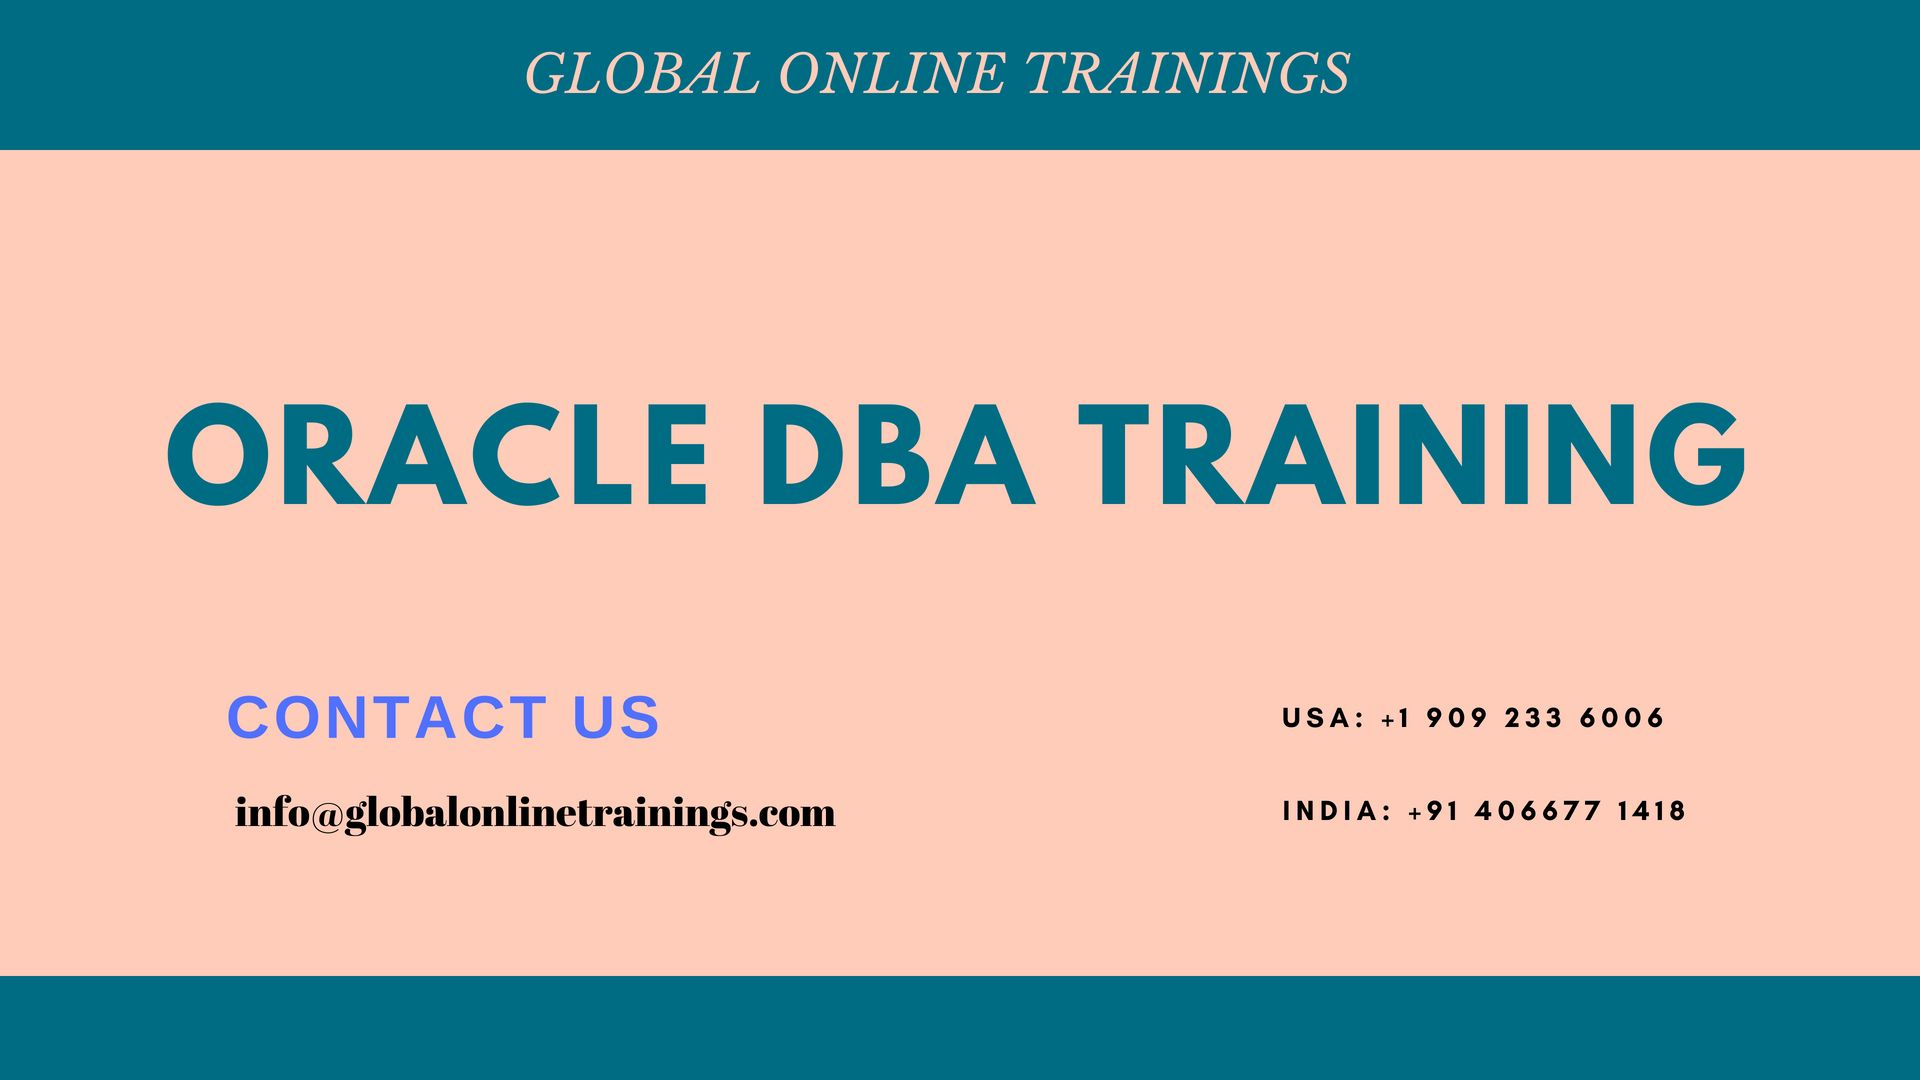 Oracle DBA Training to design and secure all server